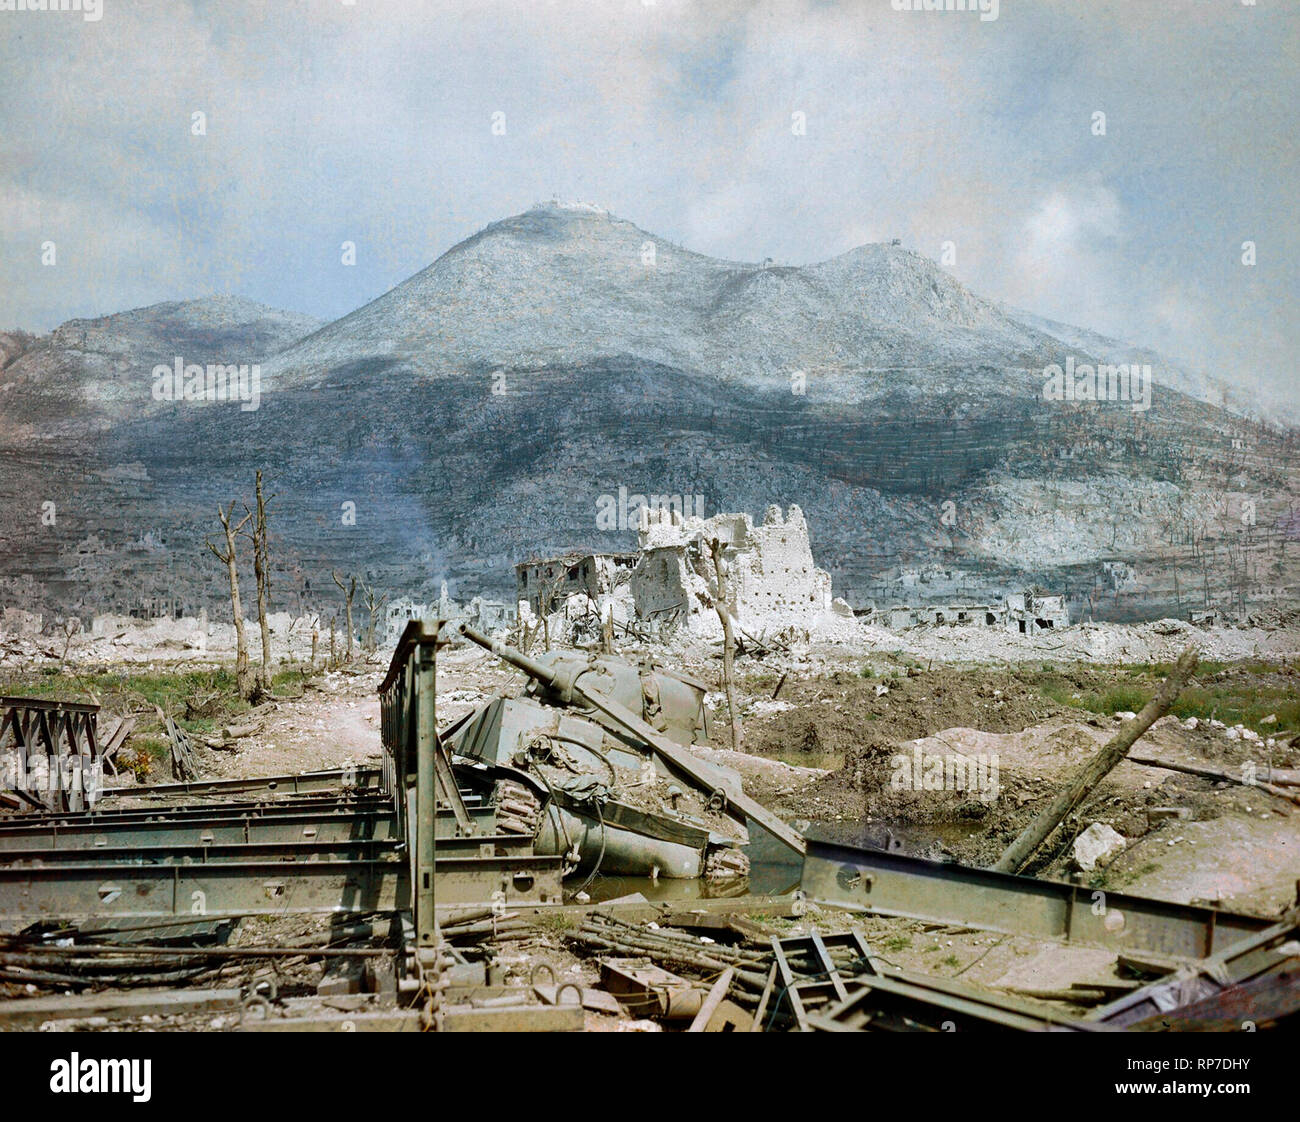 The ruins of Cassino, May 1944: a wrecked Sherman tank and Bailey bridge in the foreground, with Monastery Ridge and Castle Hill in the background. View of Cassino after heavy bombardment showing a knocked out Sherman tank by a Bailey bridge in the foreground with Monastery Ridge and Castle Hill in the background. - Stock Image